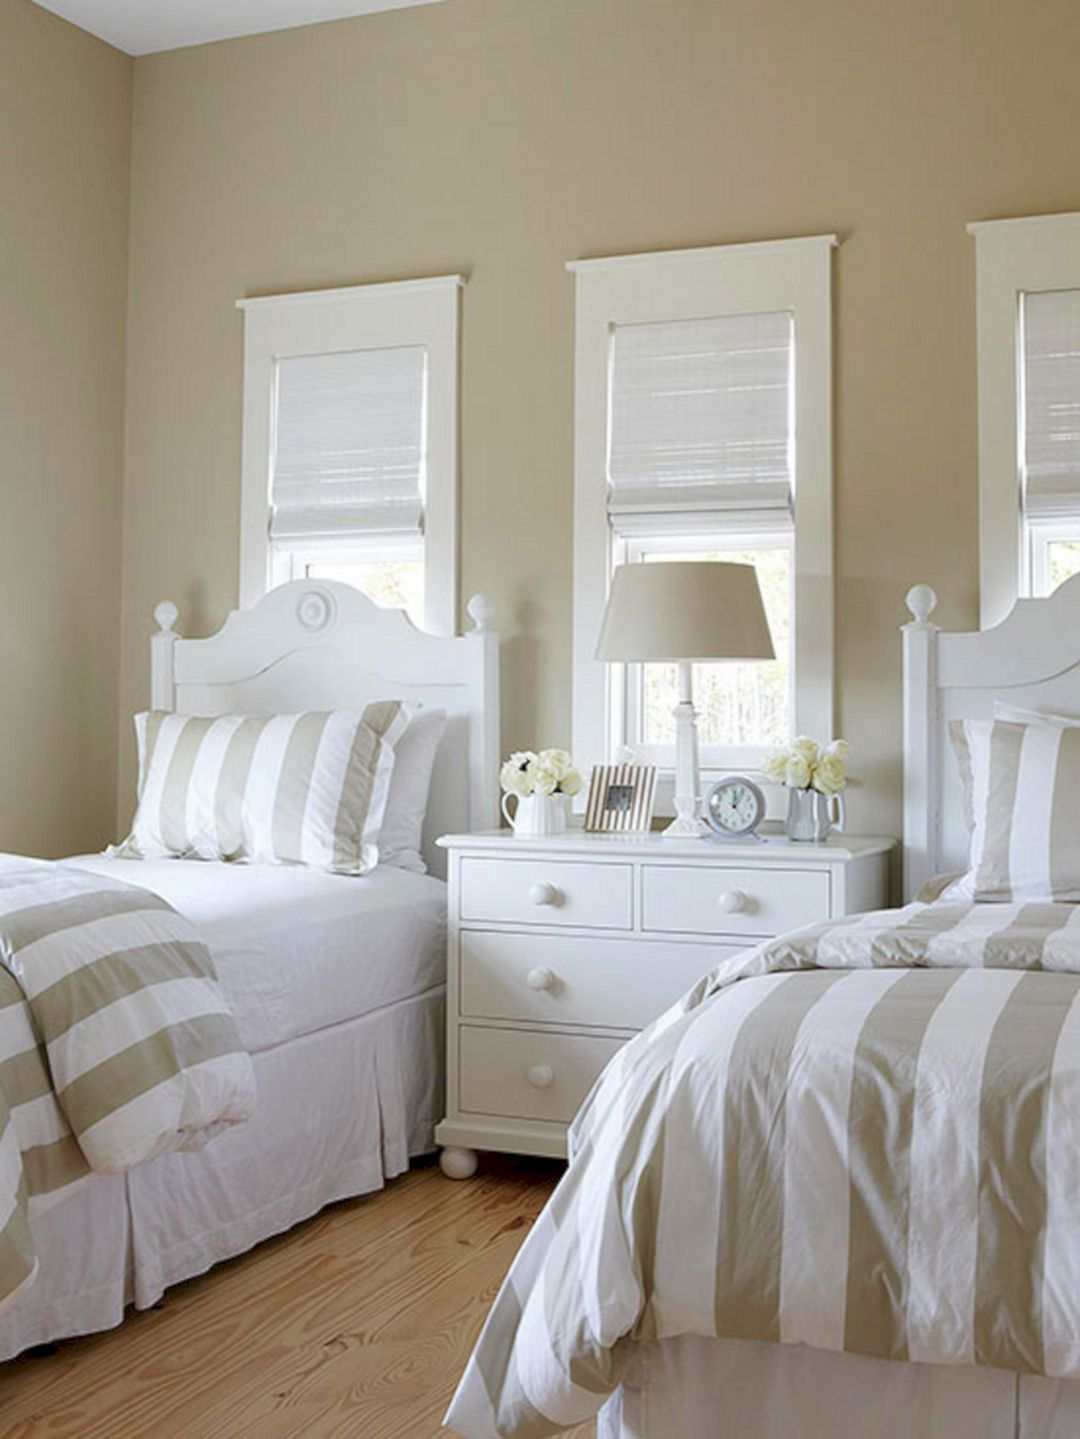 50+ Best Twin Bed Ideas For Small Bedroom 21   Twin beds ...